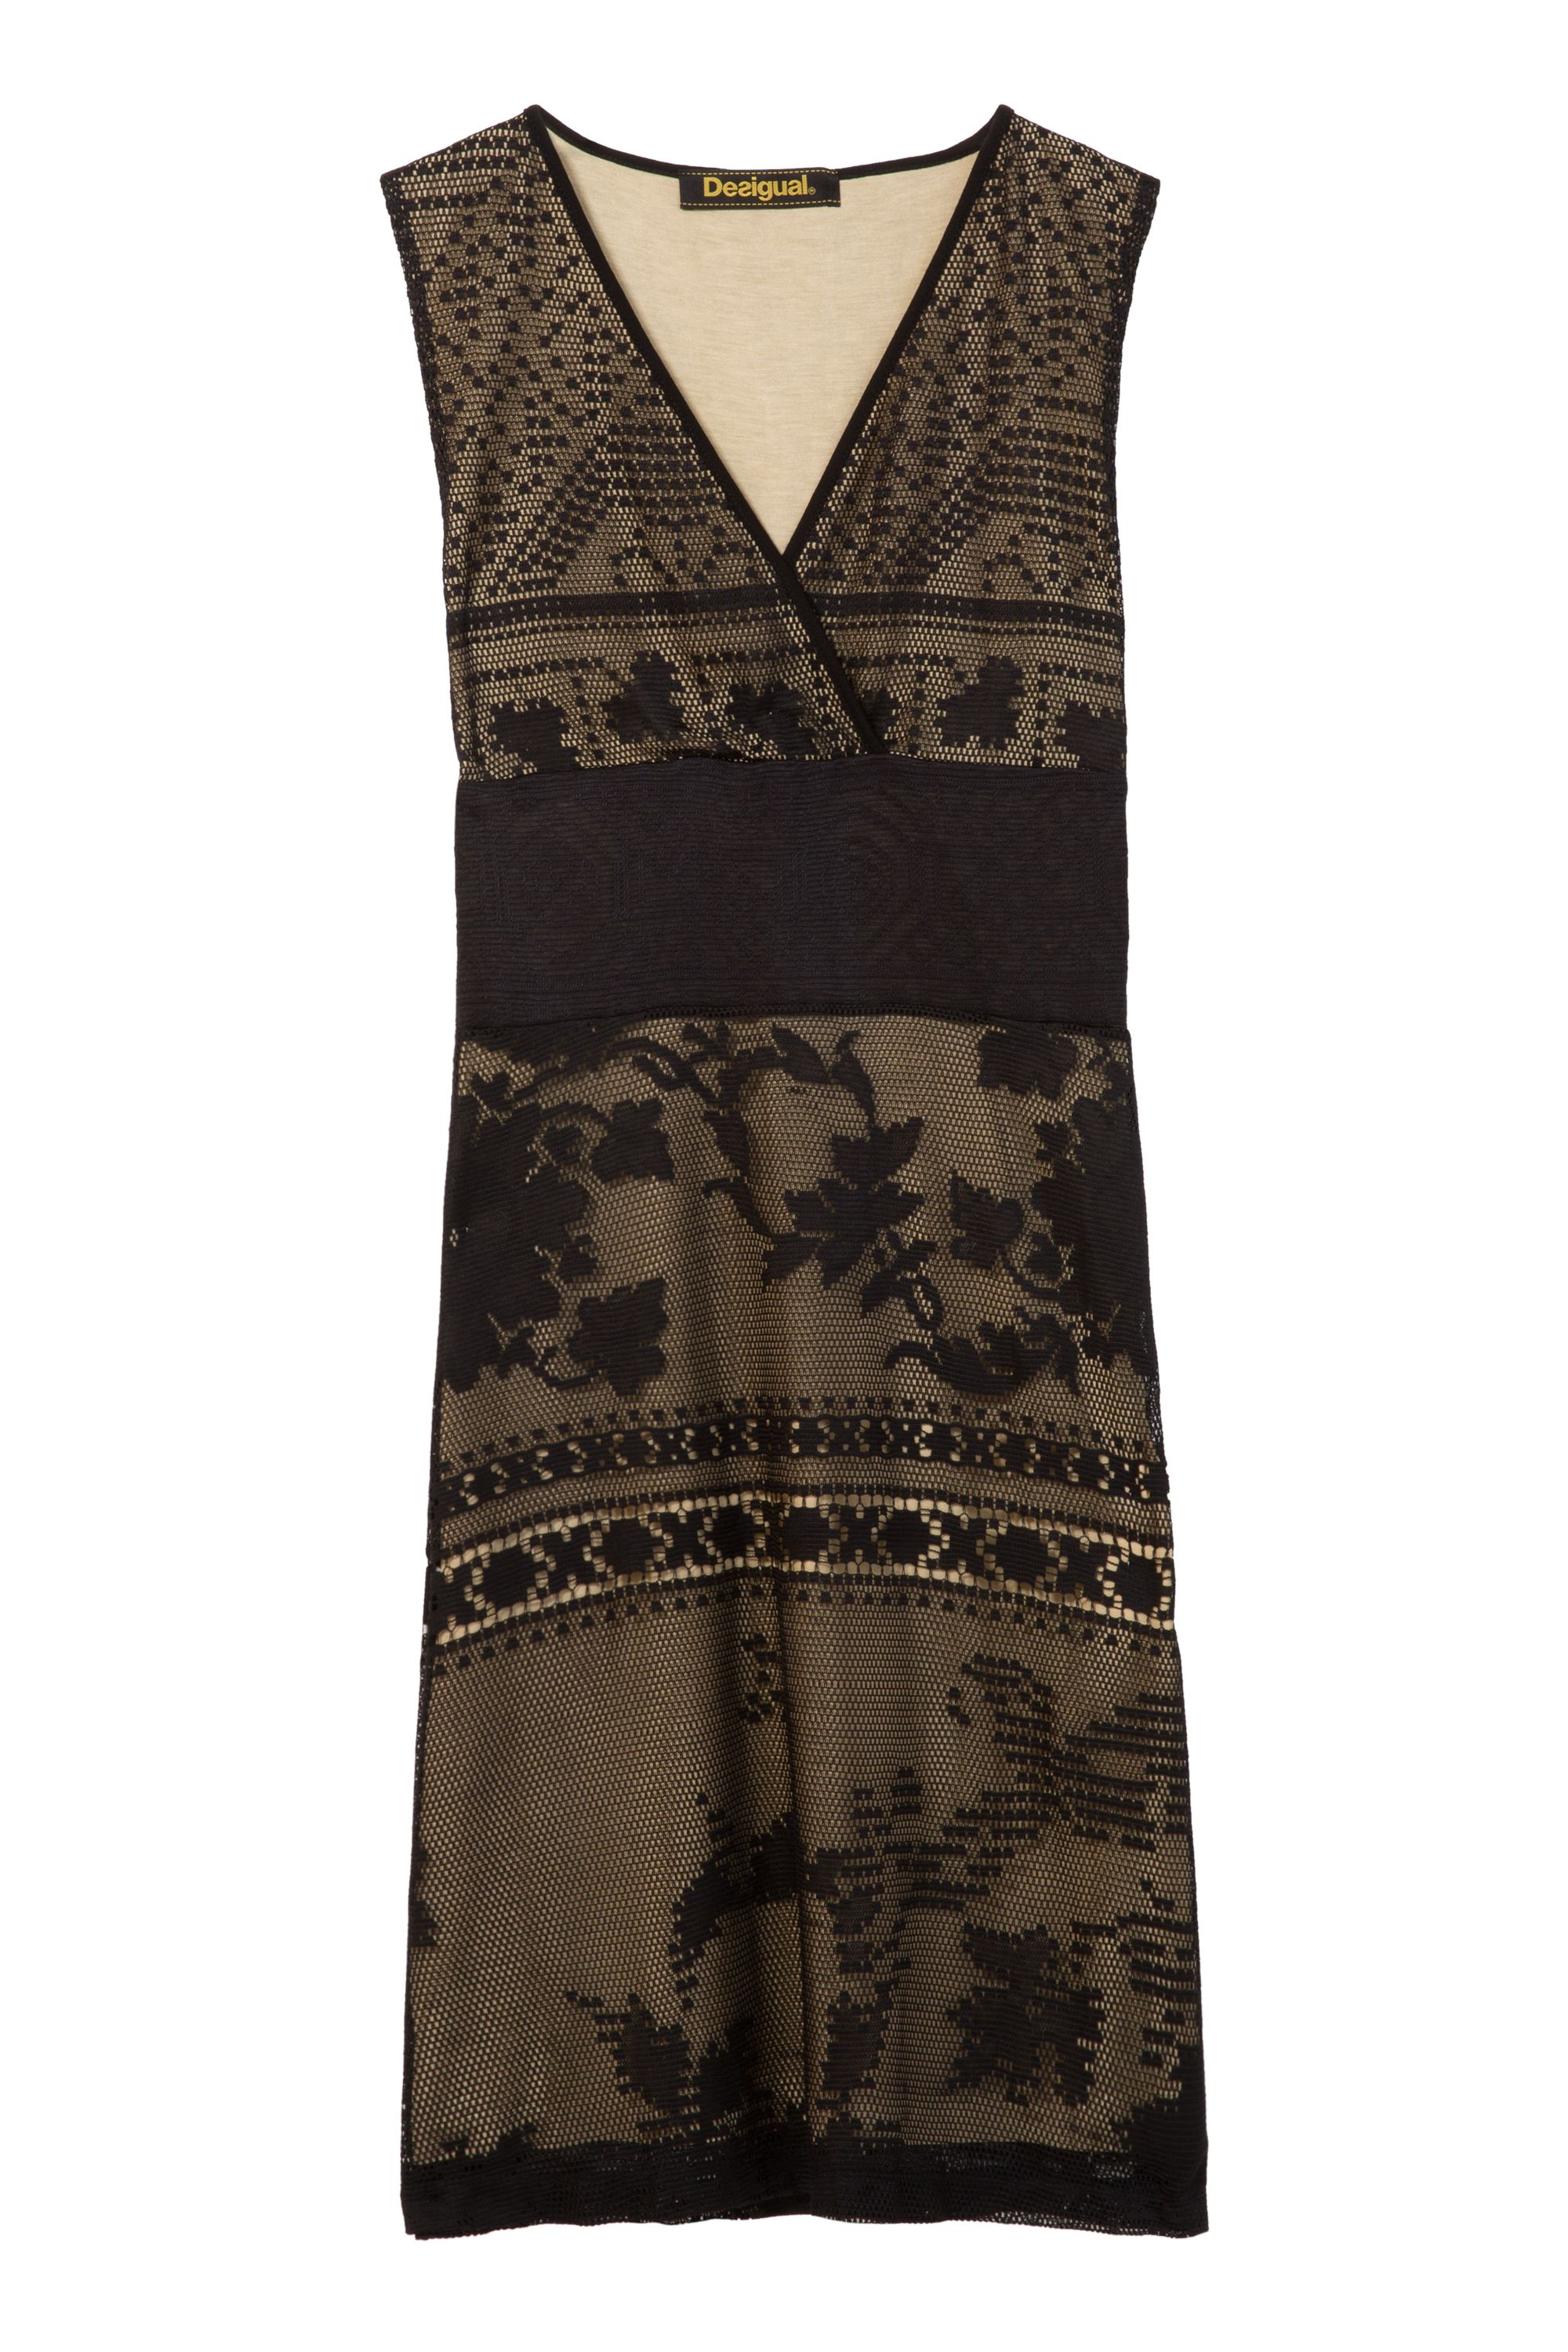 Desigual Dress Elga, Black